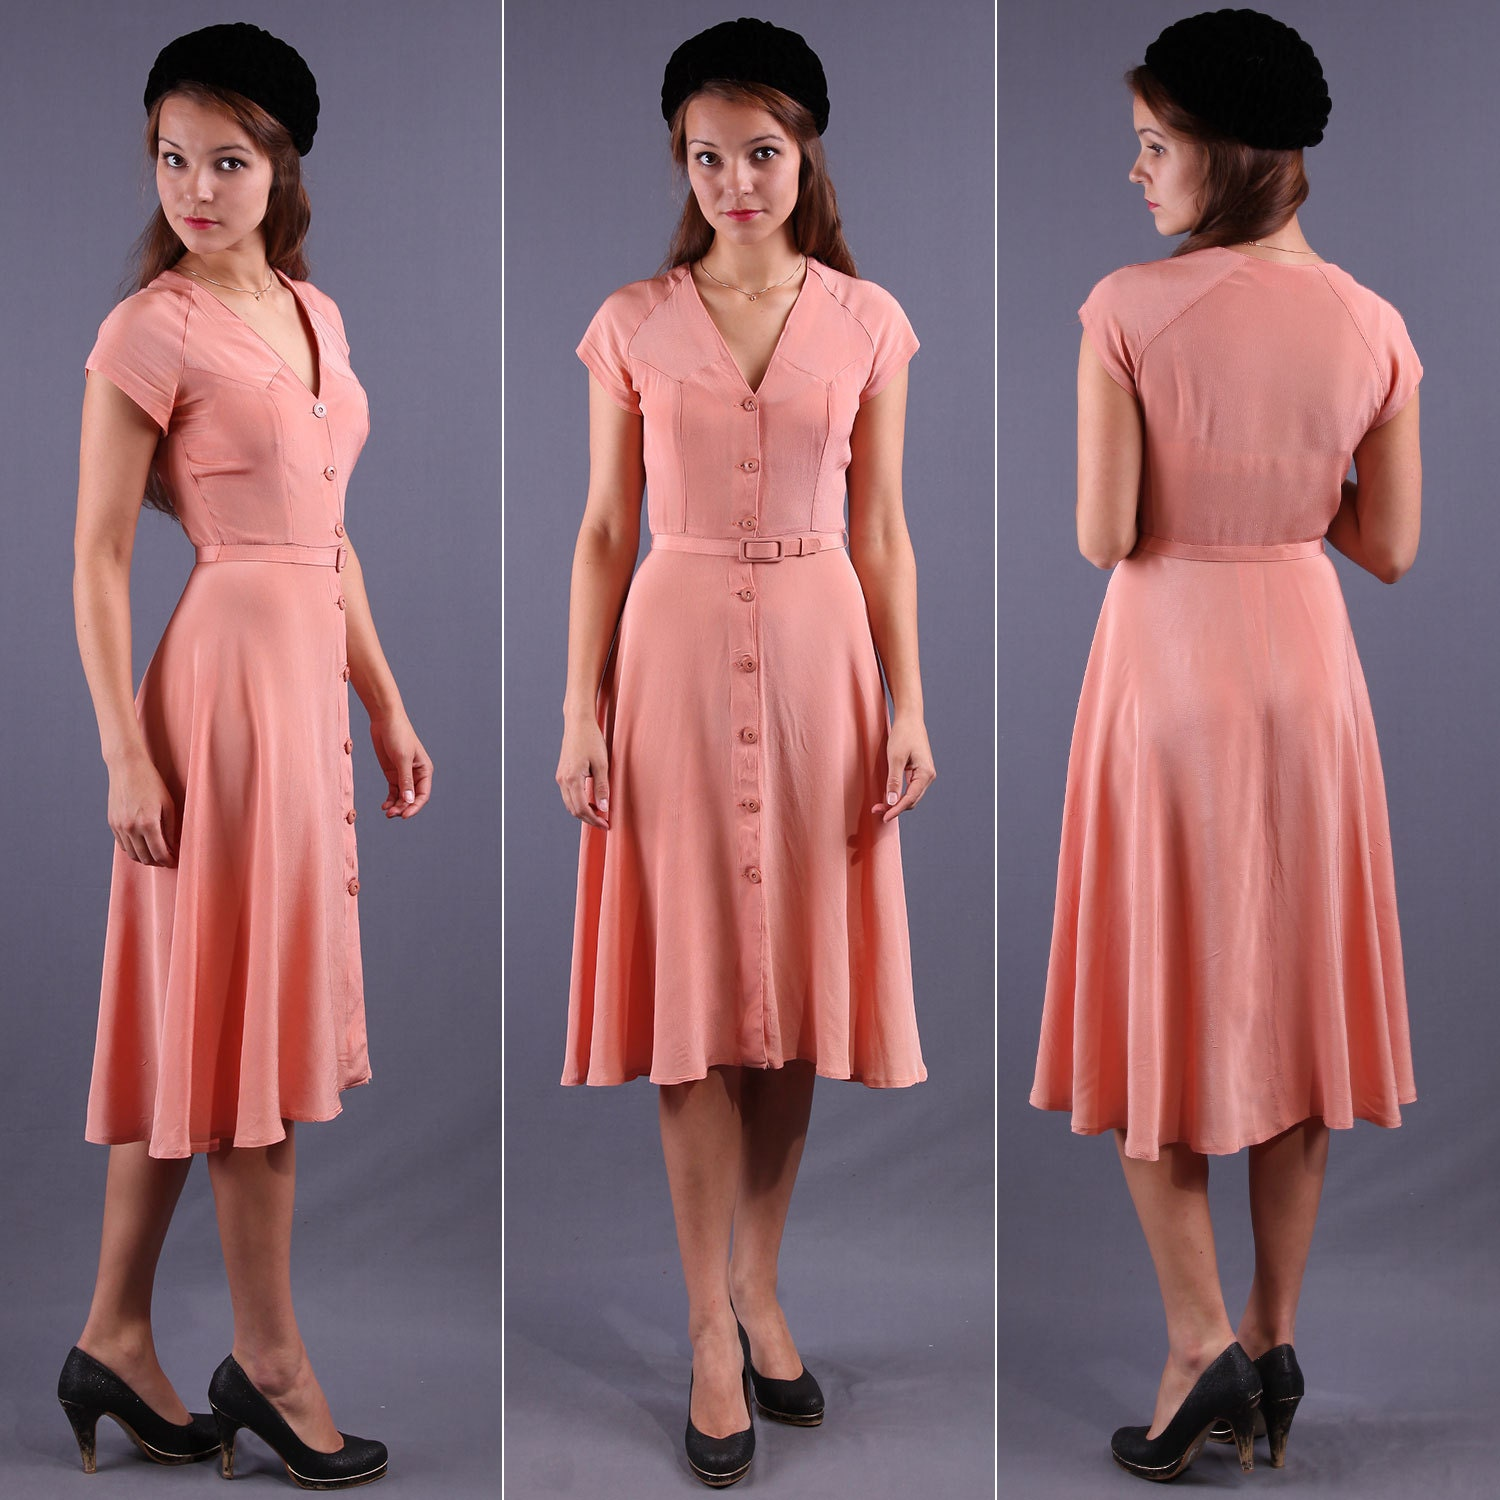 30s style clothing for women pictures